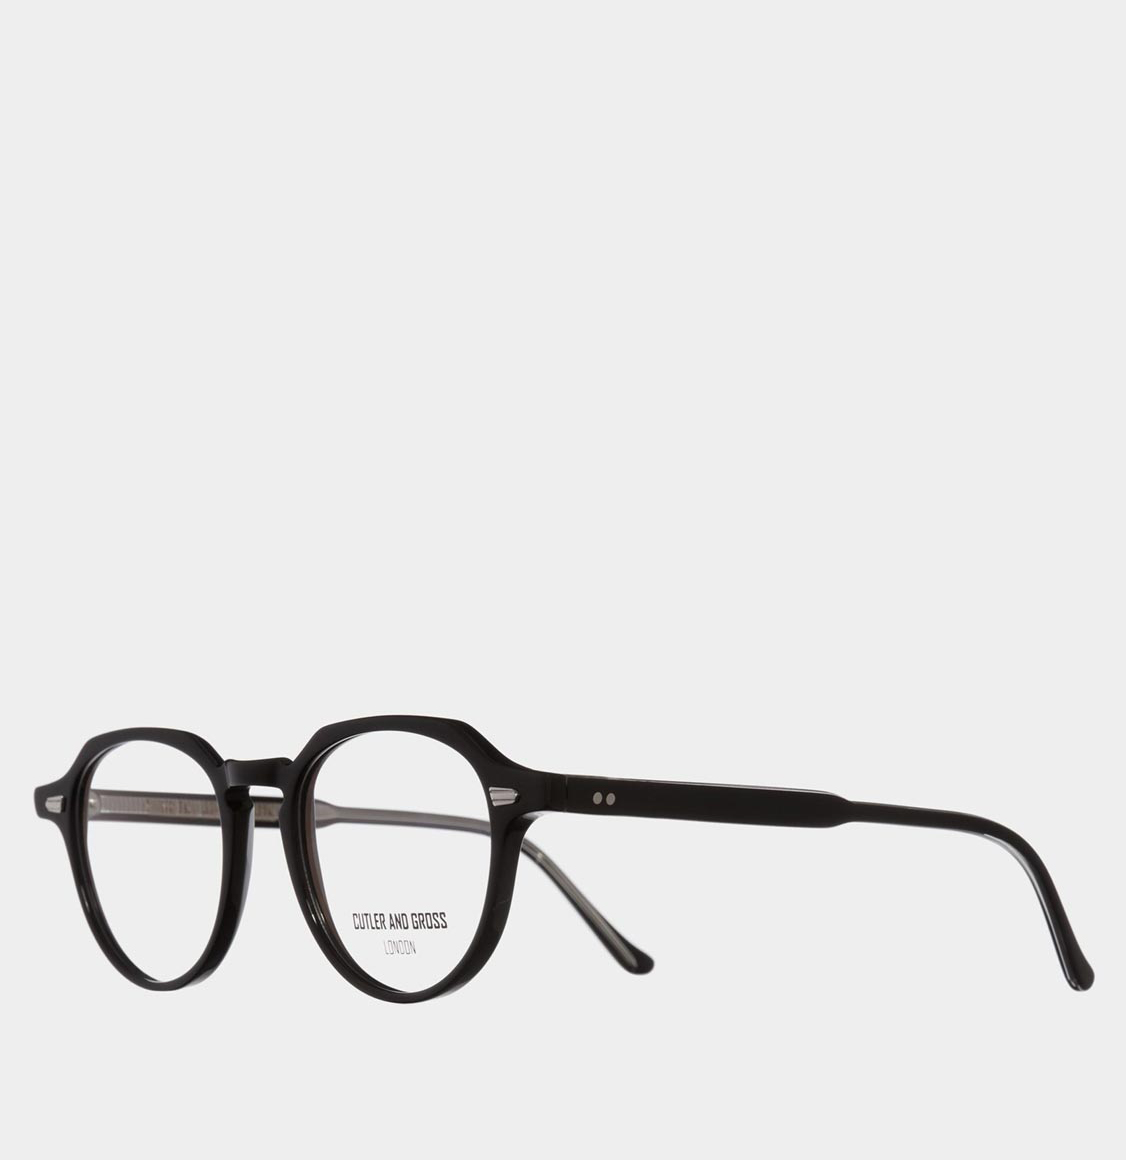 Cutler and Gross Hexagonal-Frame Black Acetate Optical Glasses